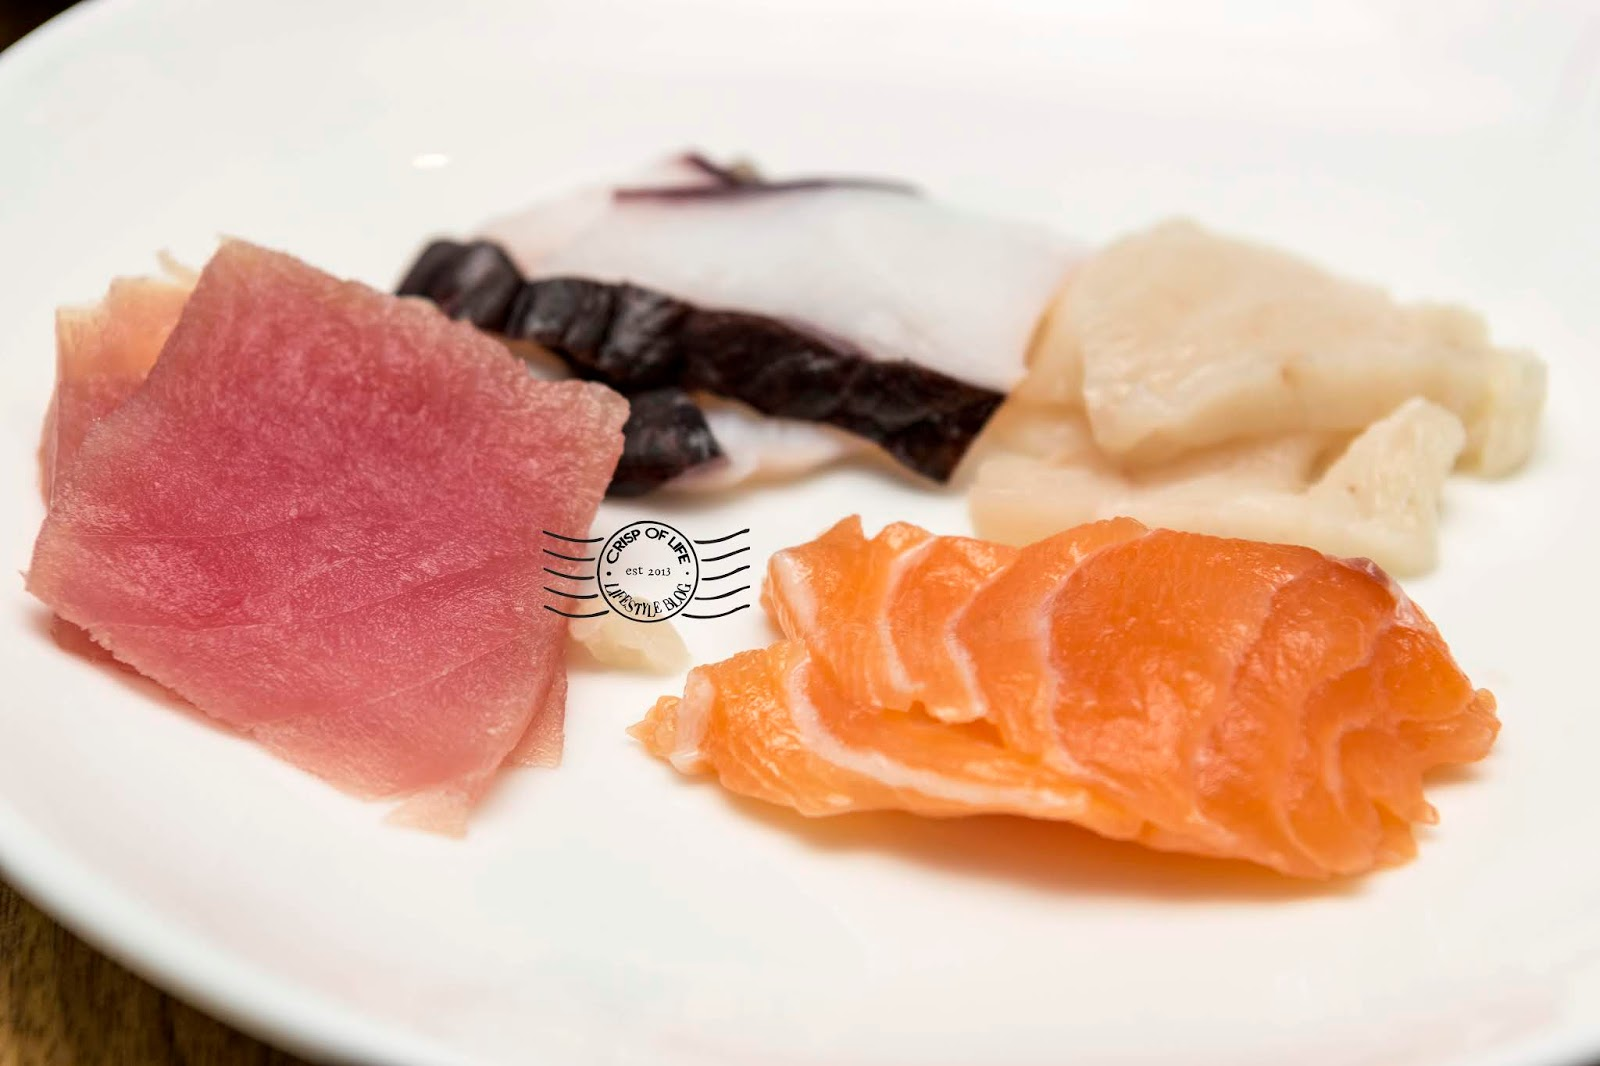 Seafood Buffet Dinner for RM 128 nett per adult free 1 children @ Iconic Hotel, Penang